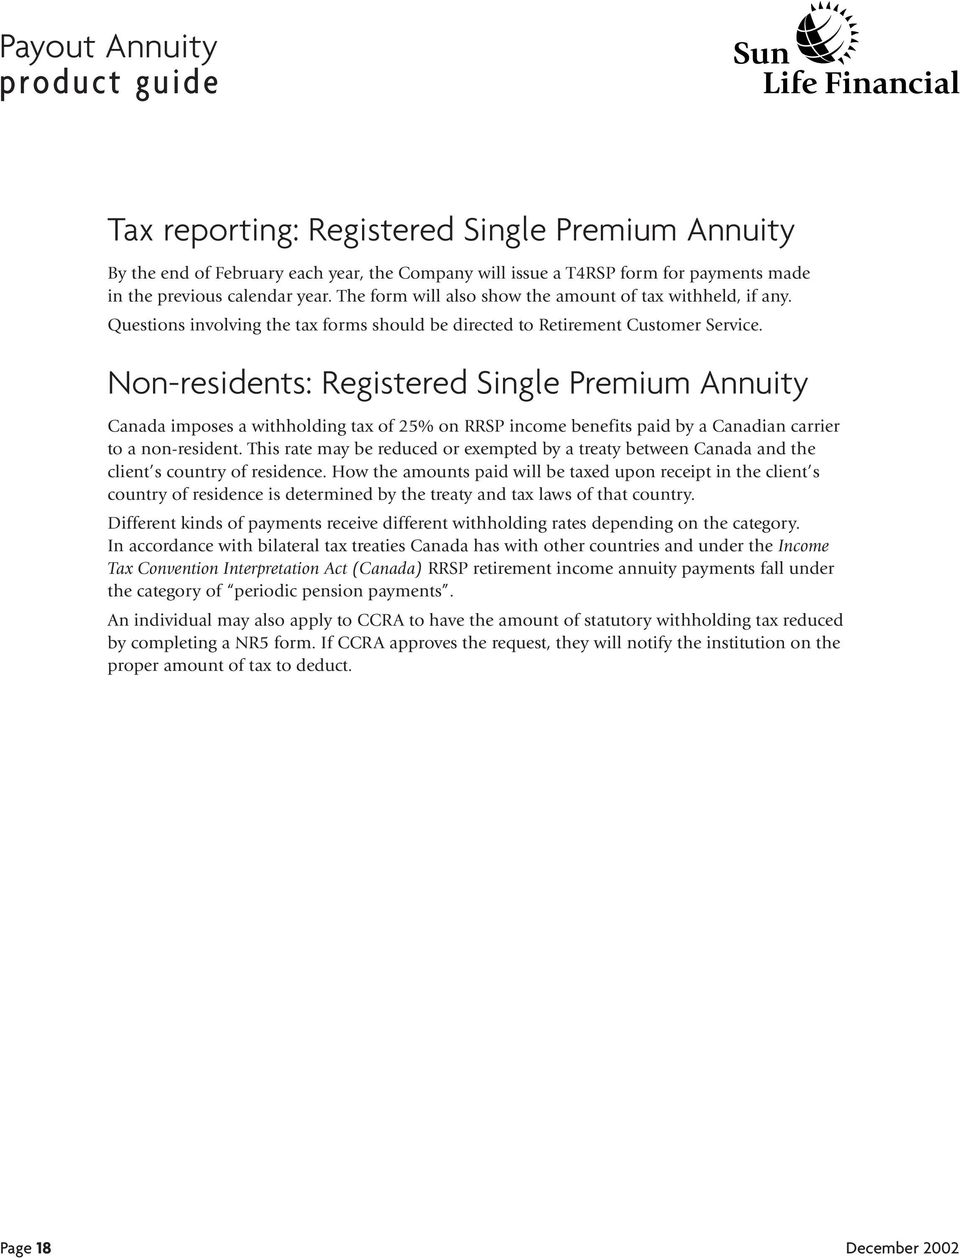 Non-residents: Registered Single Premium Annuity Canada imposes a withholding tax of 25% on RRSP income benefits paid by a Canadian carrier to a non-resident.